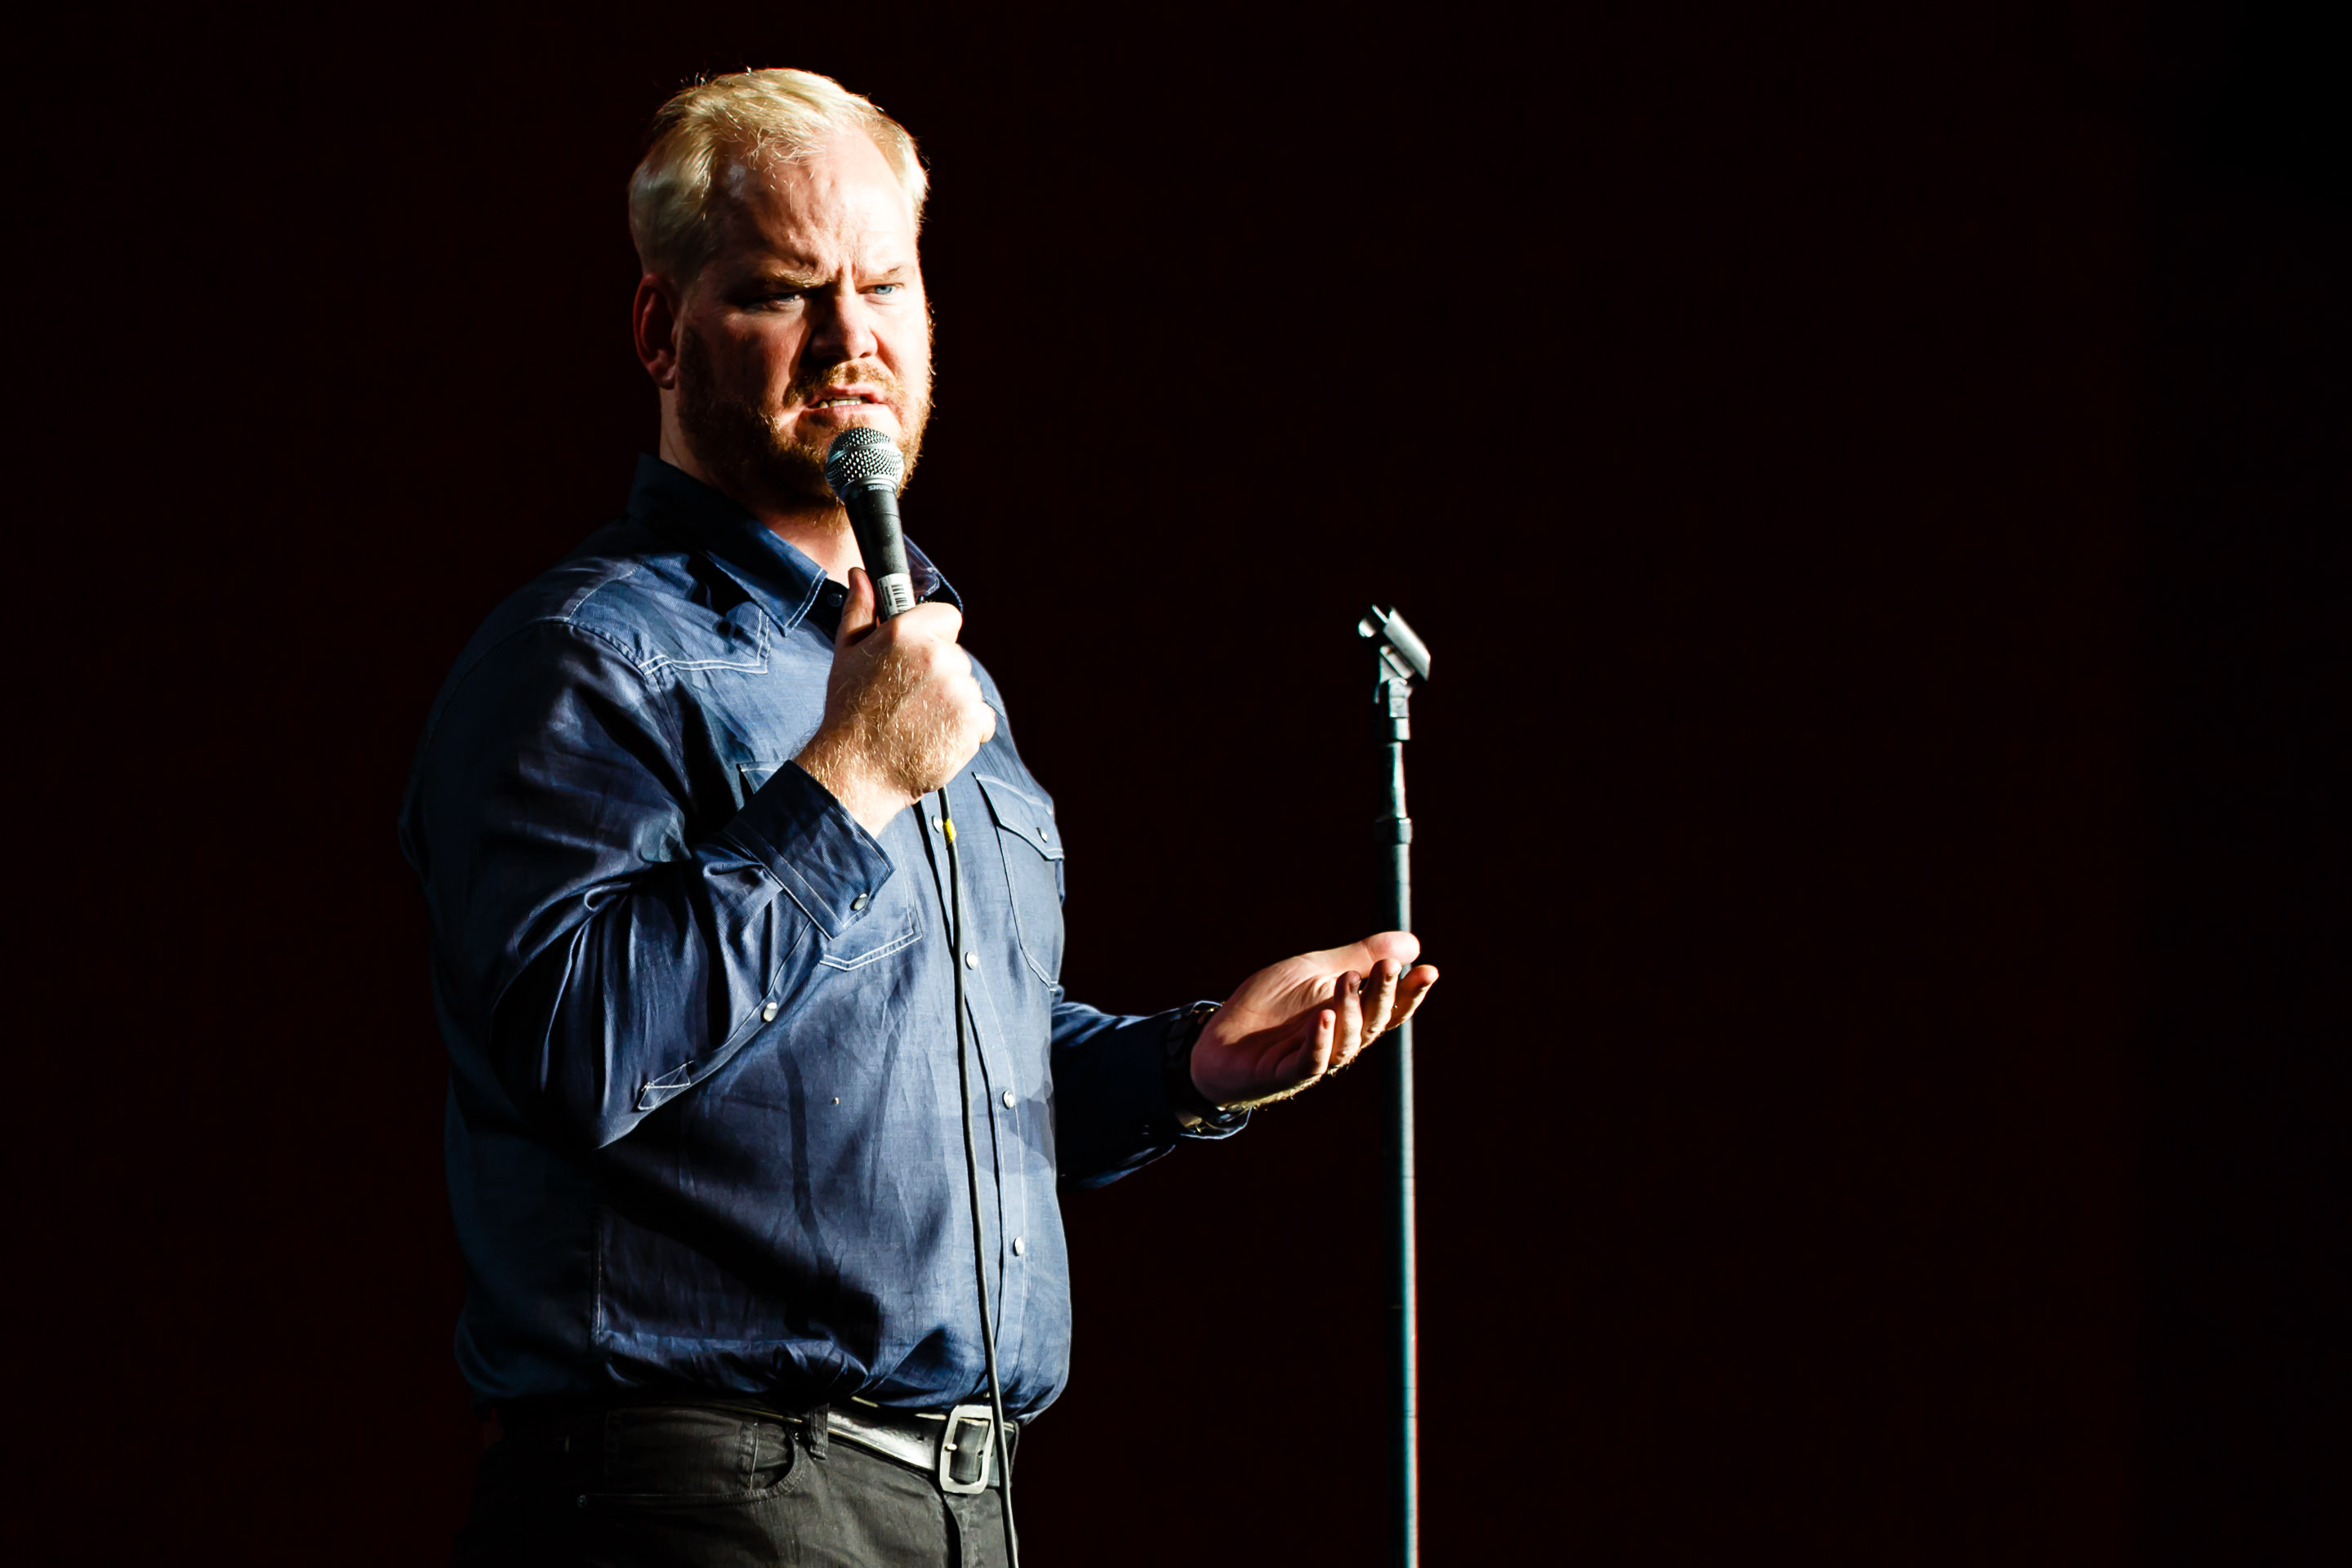 20141006202352 12387 MON EVENING ENTERTAINMENT JIM GAFFIGAN